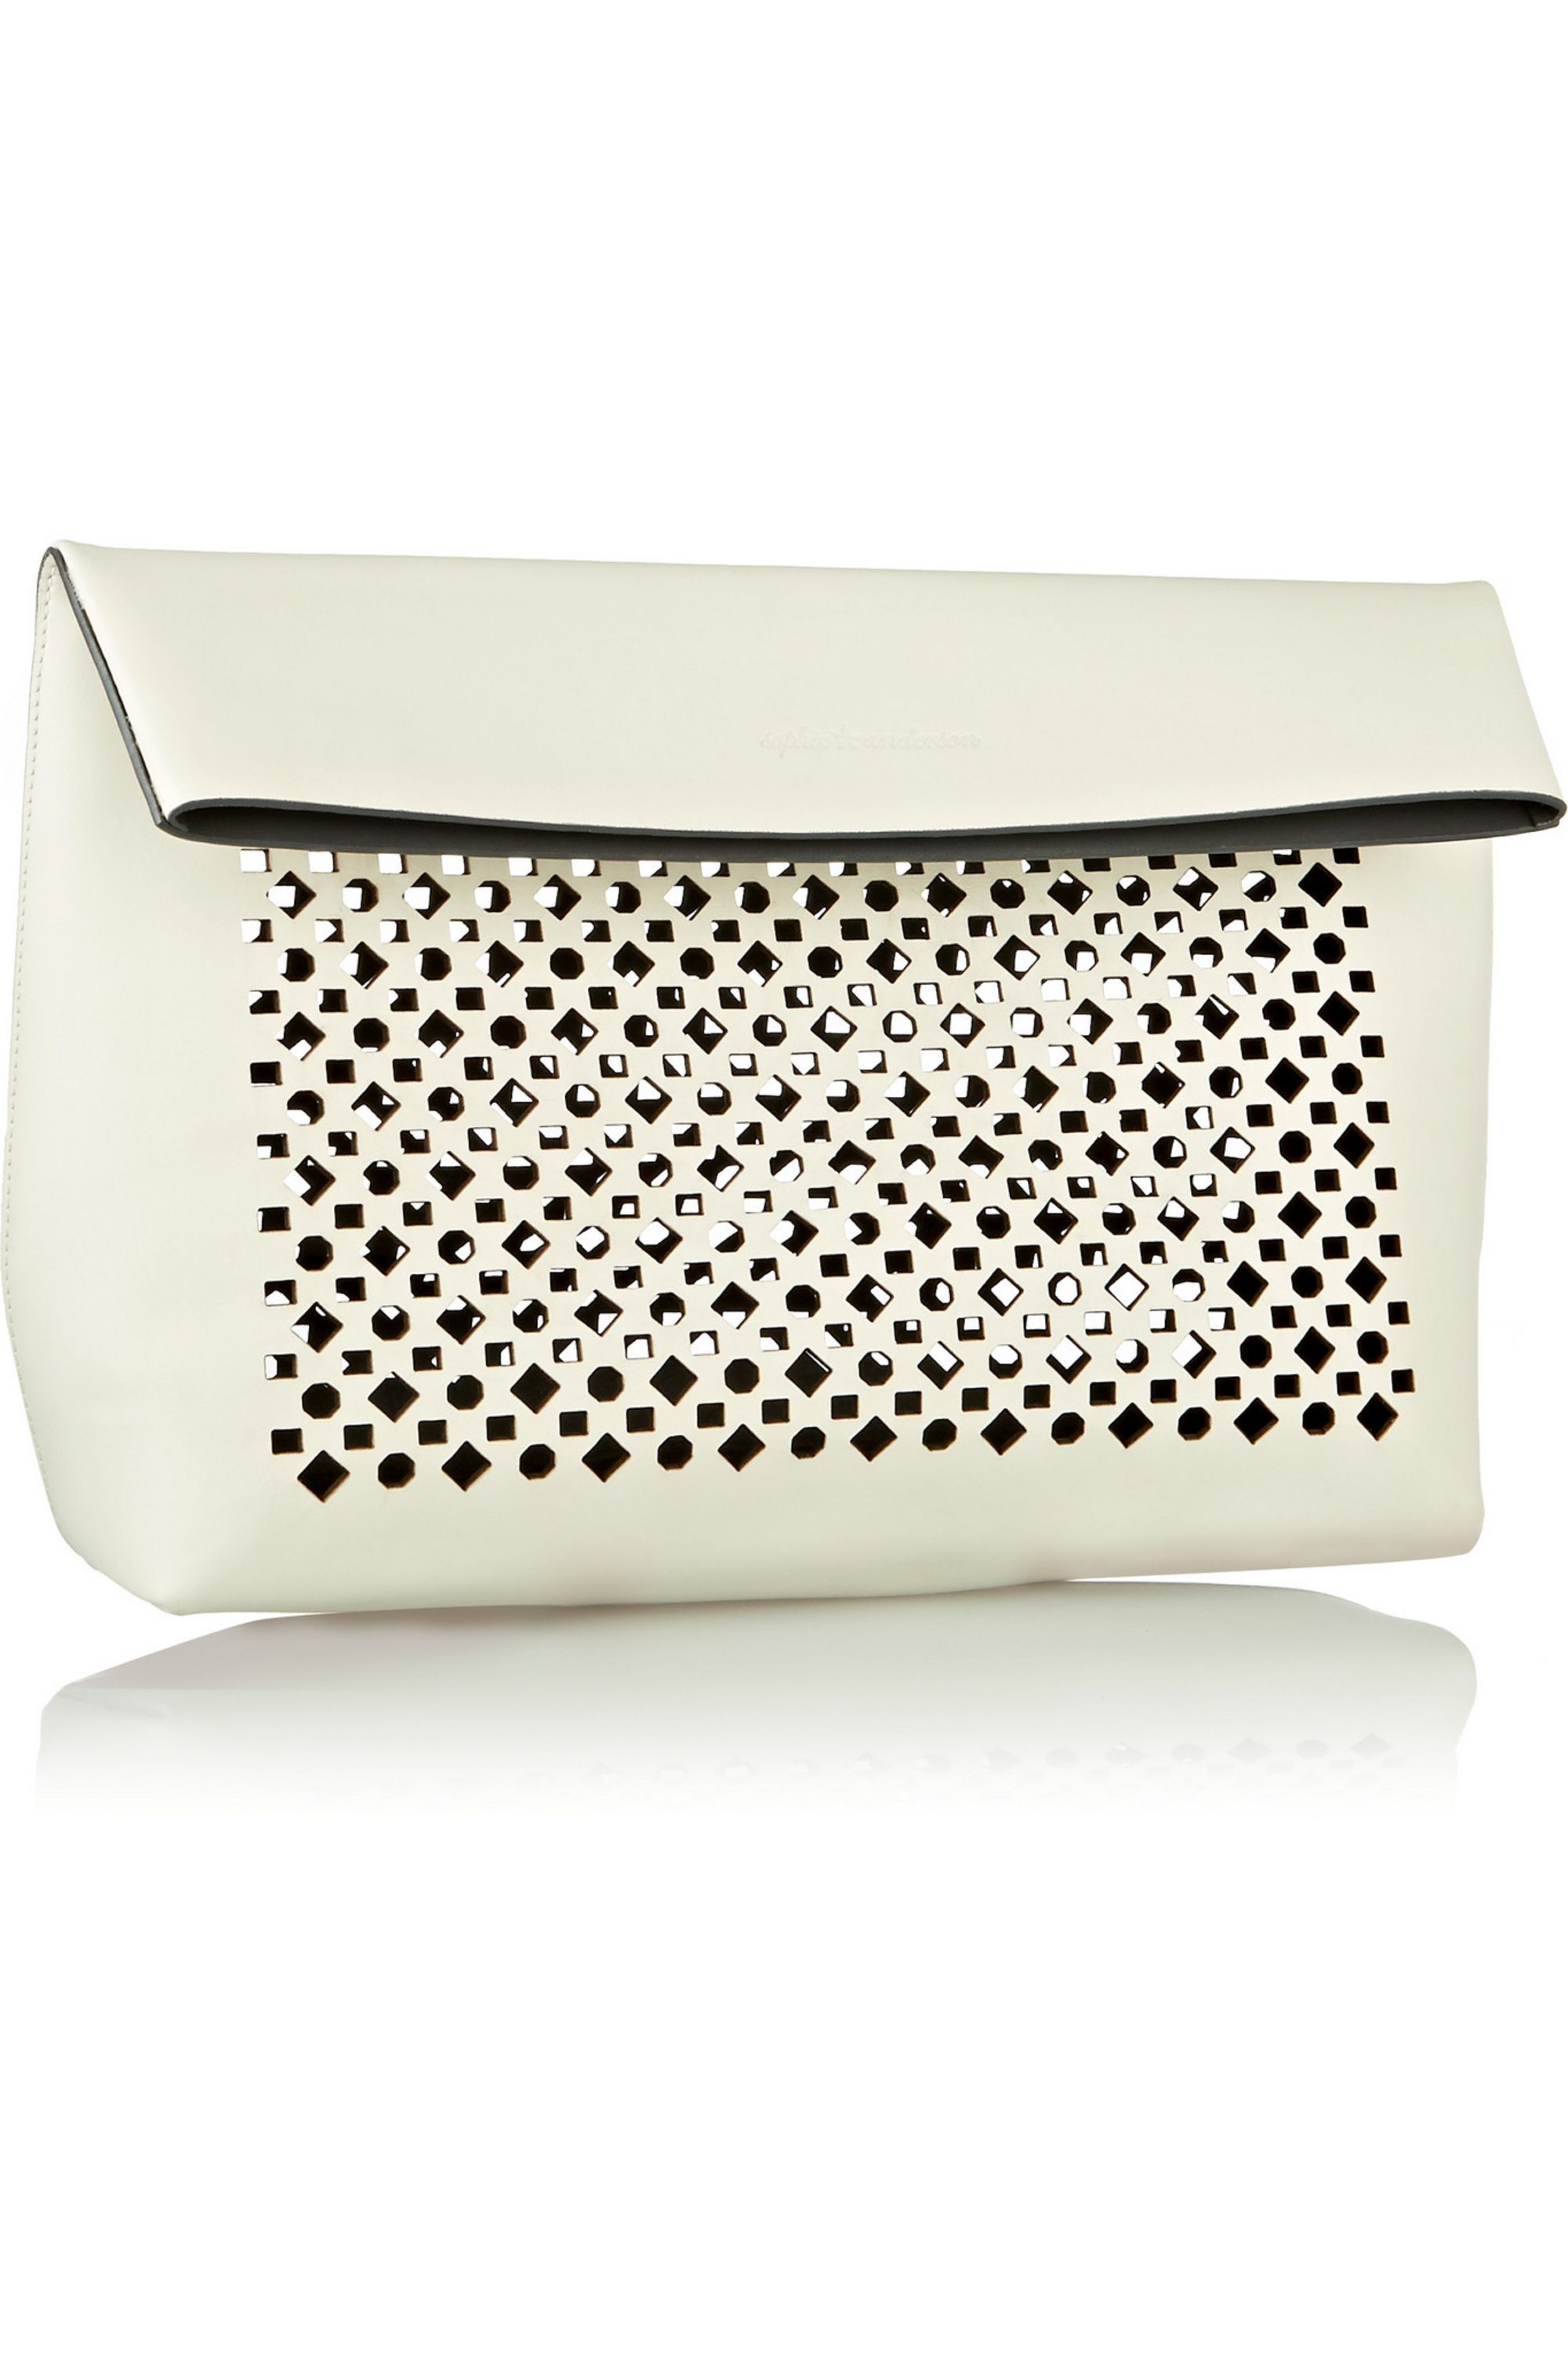 Sophie Anderson Abril laser-cut leather clutch